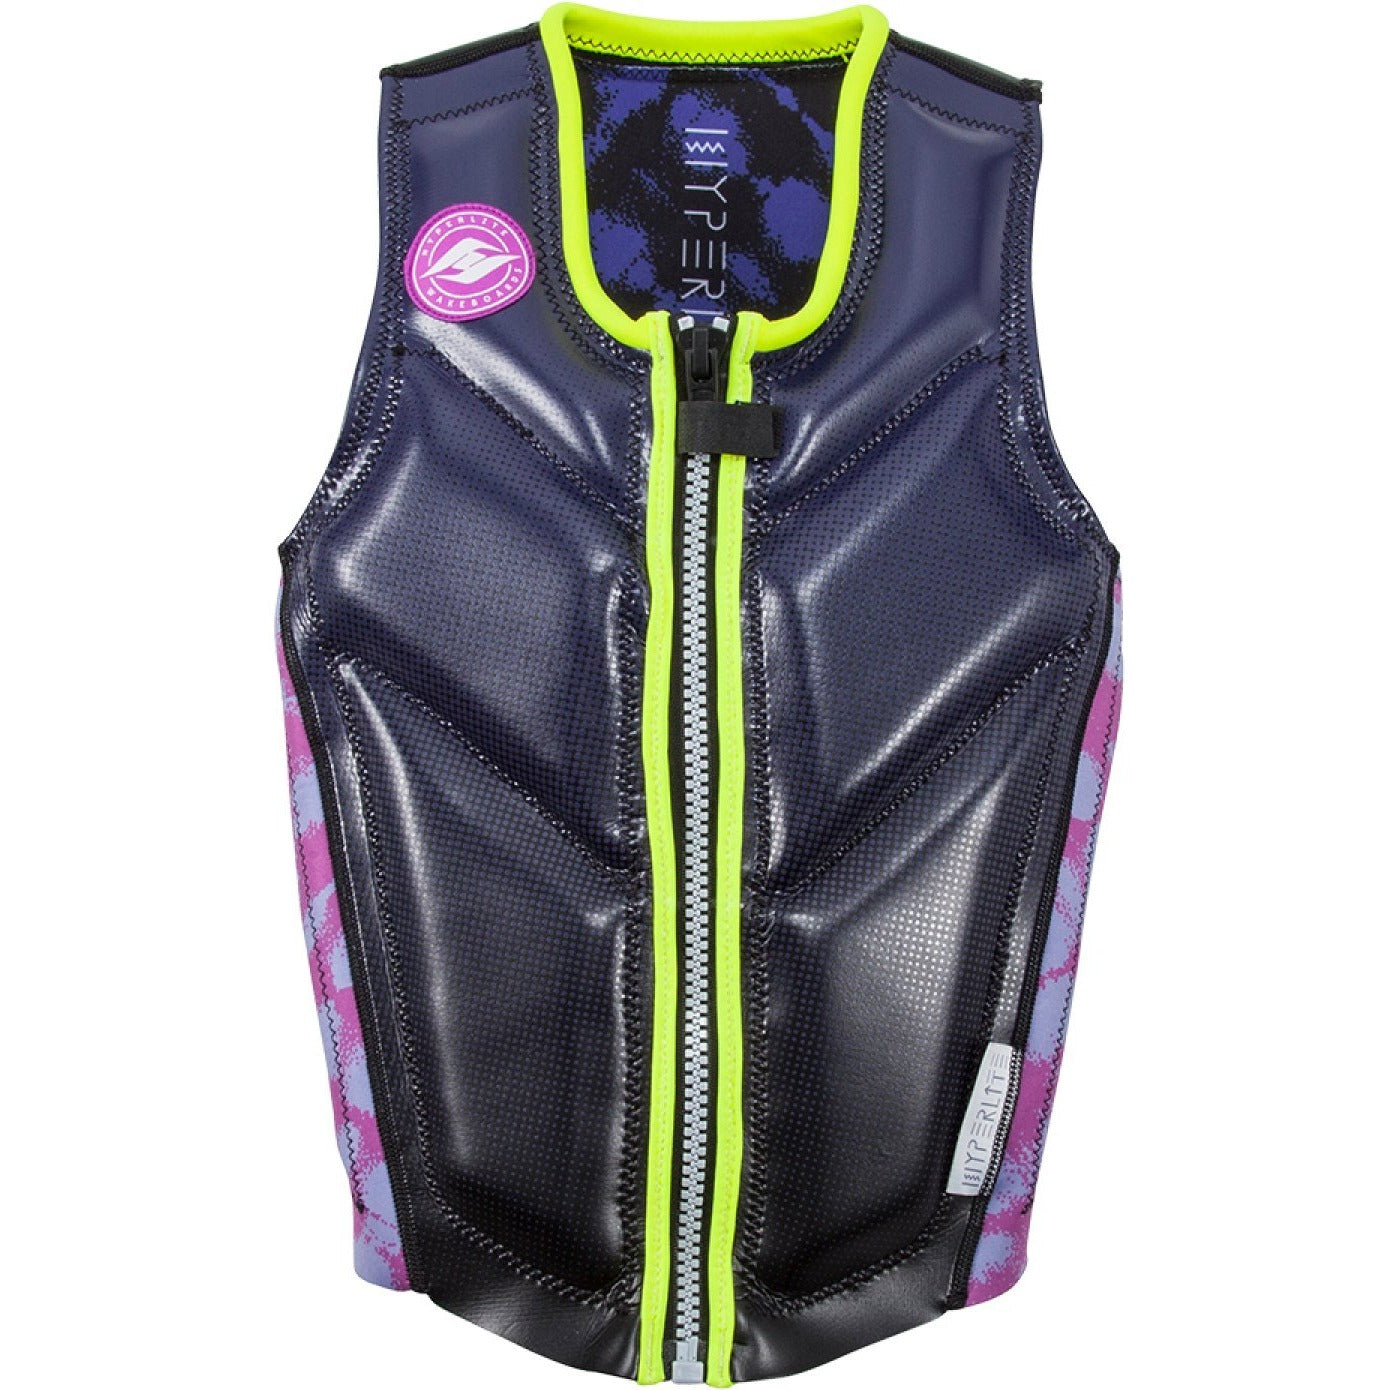 Hyperlite Stiletto Women's Life Vest 2018 - 88 Gear